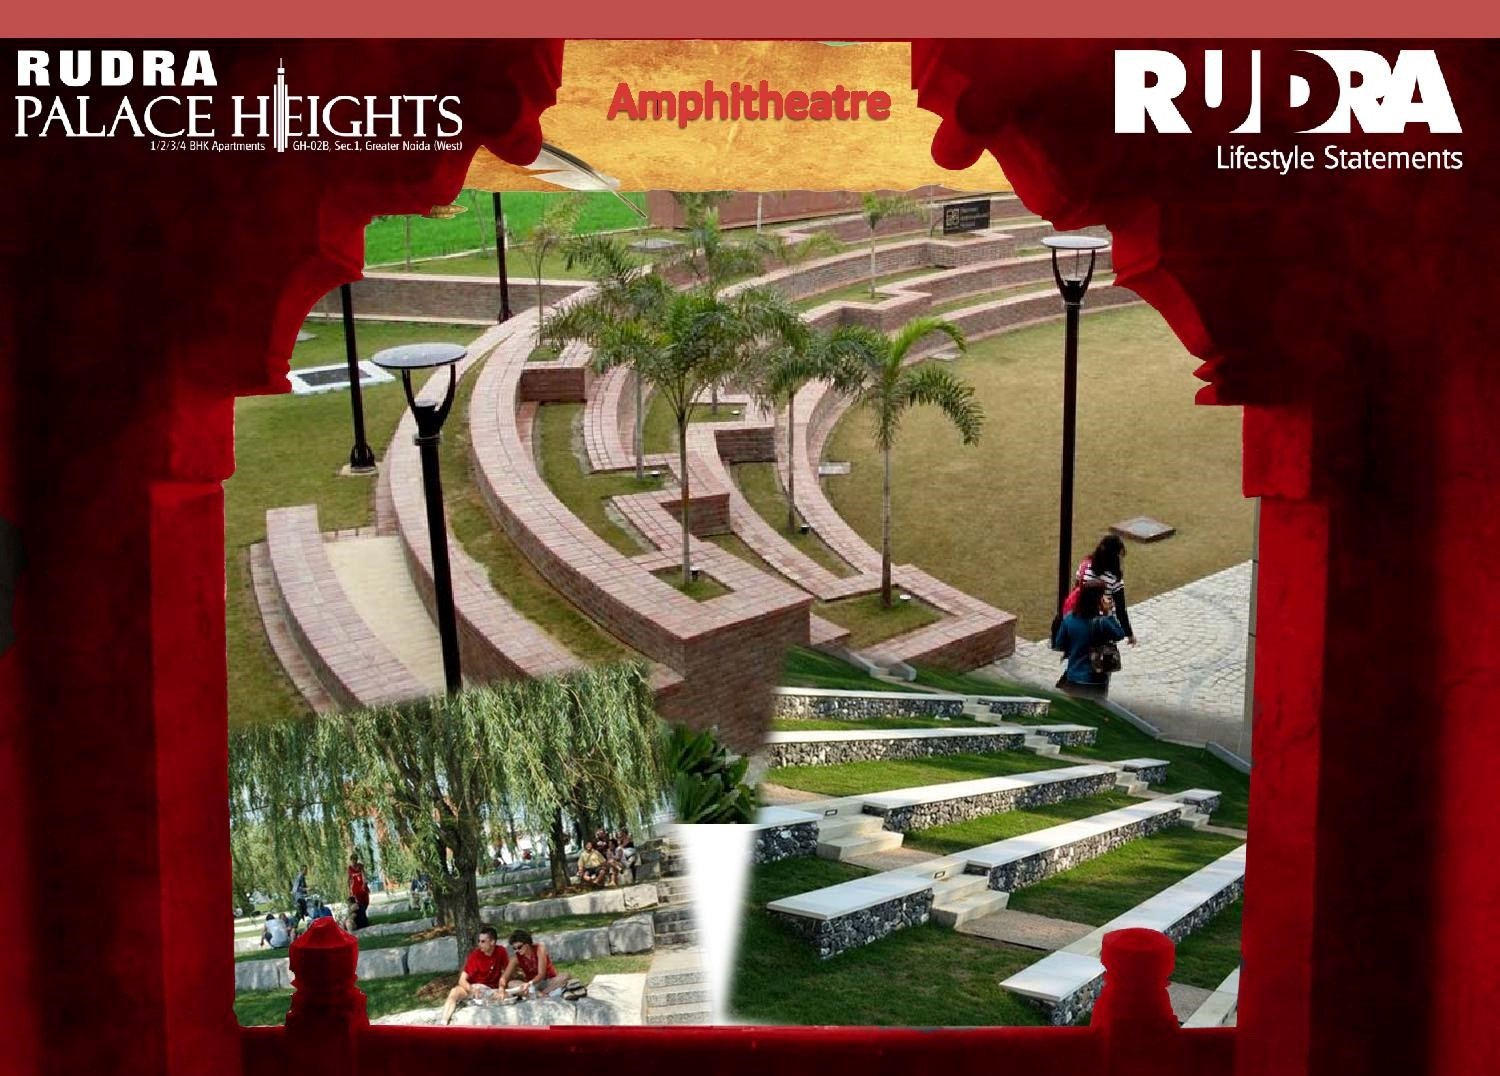 Rudra Palace Heights